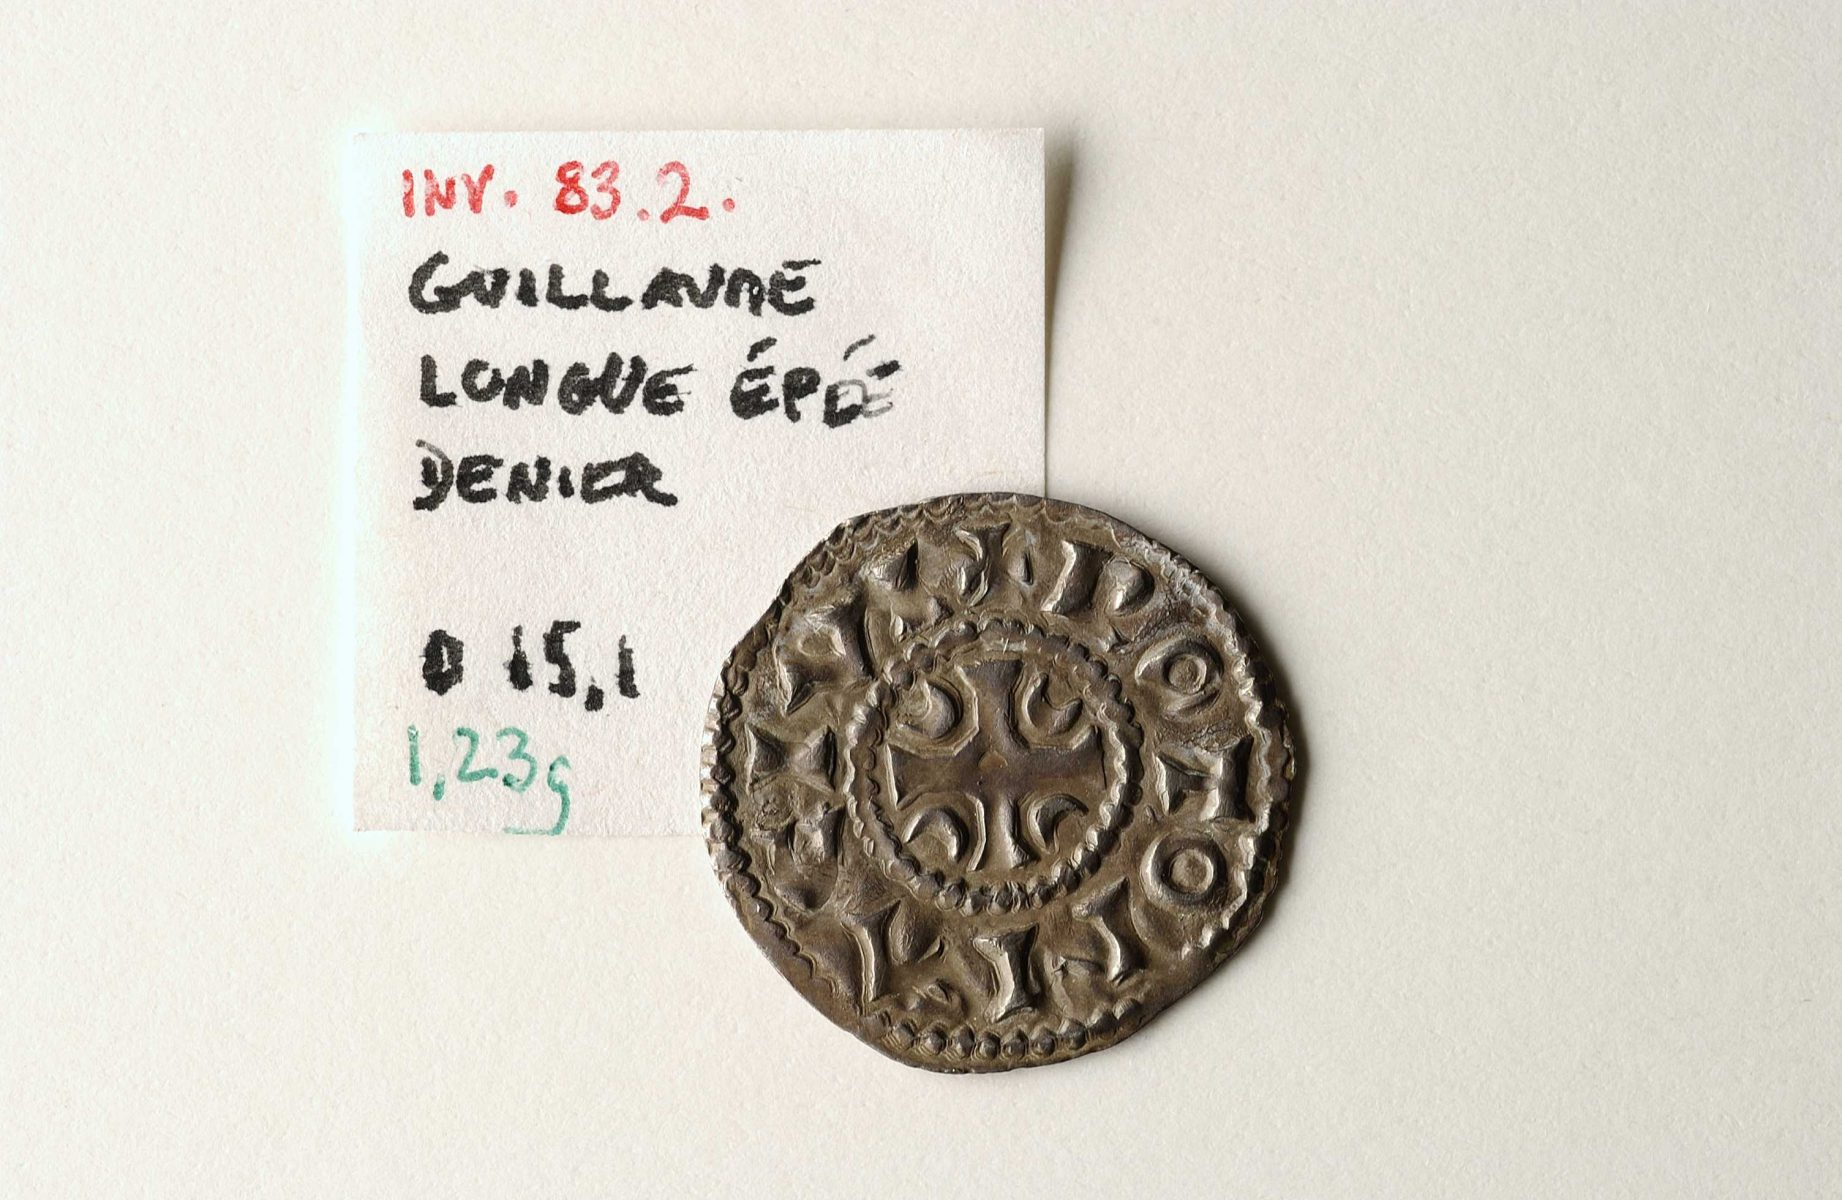 Silver coin to the effigy of Duke William Longsword